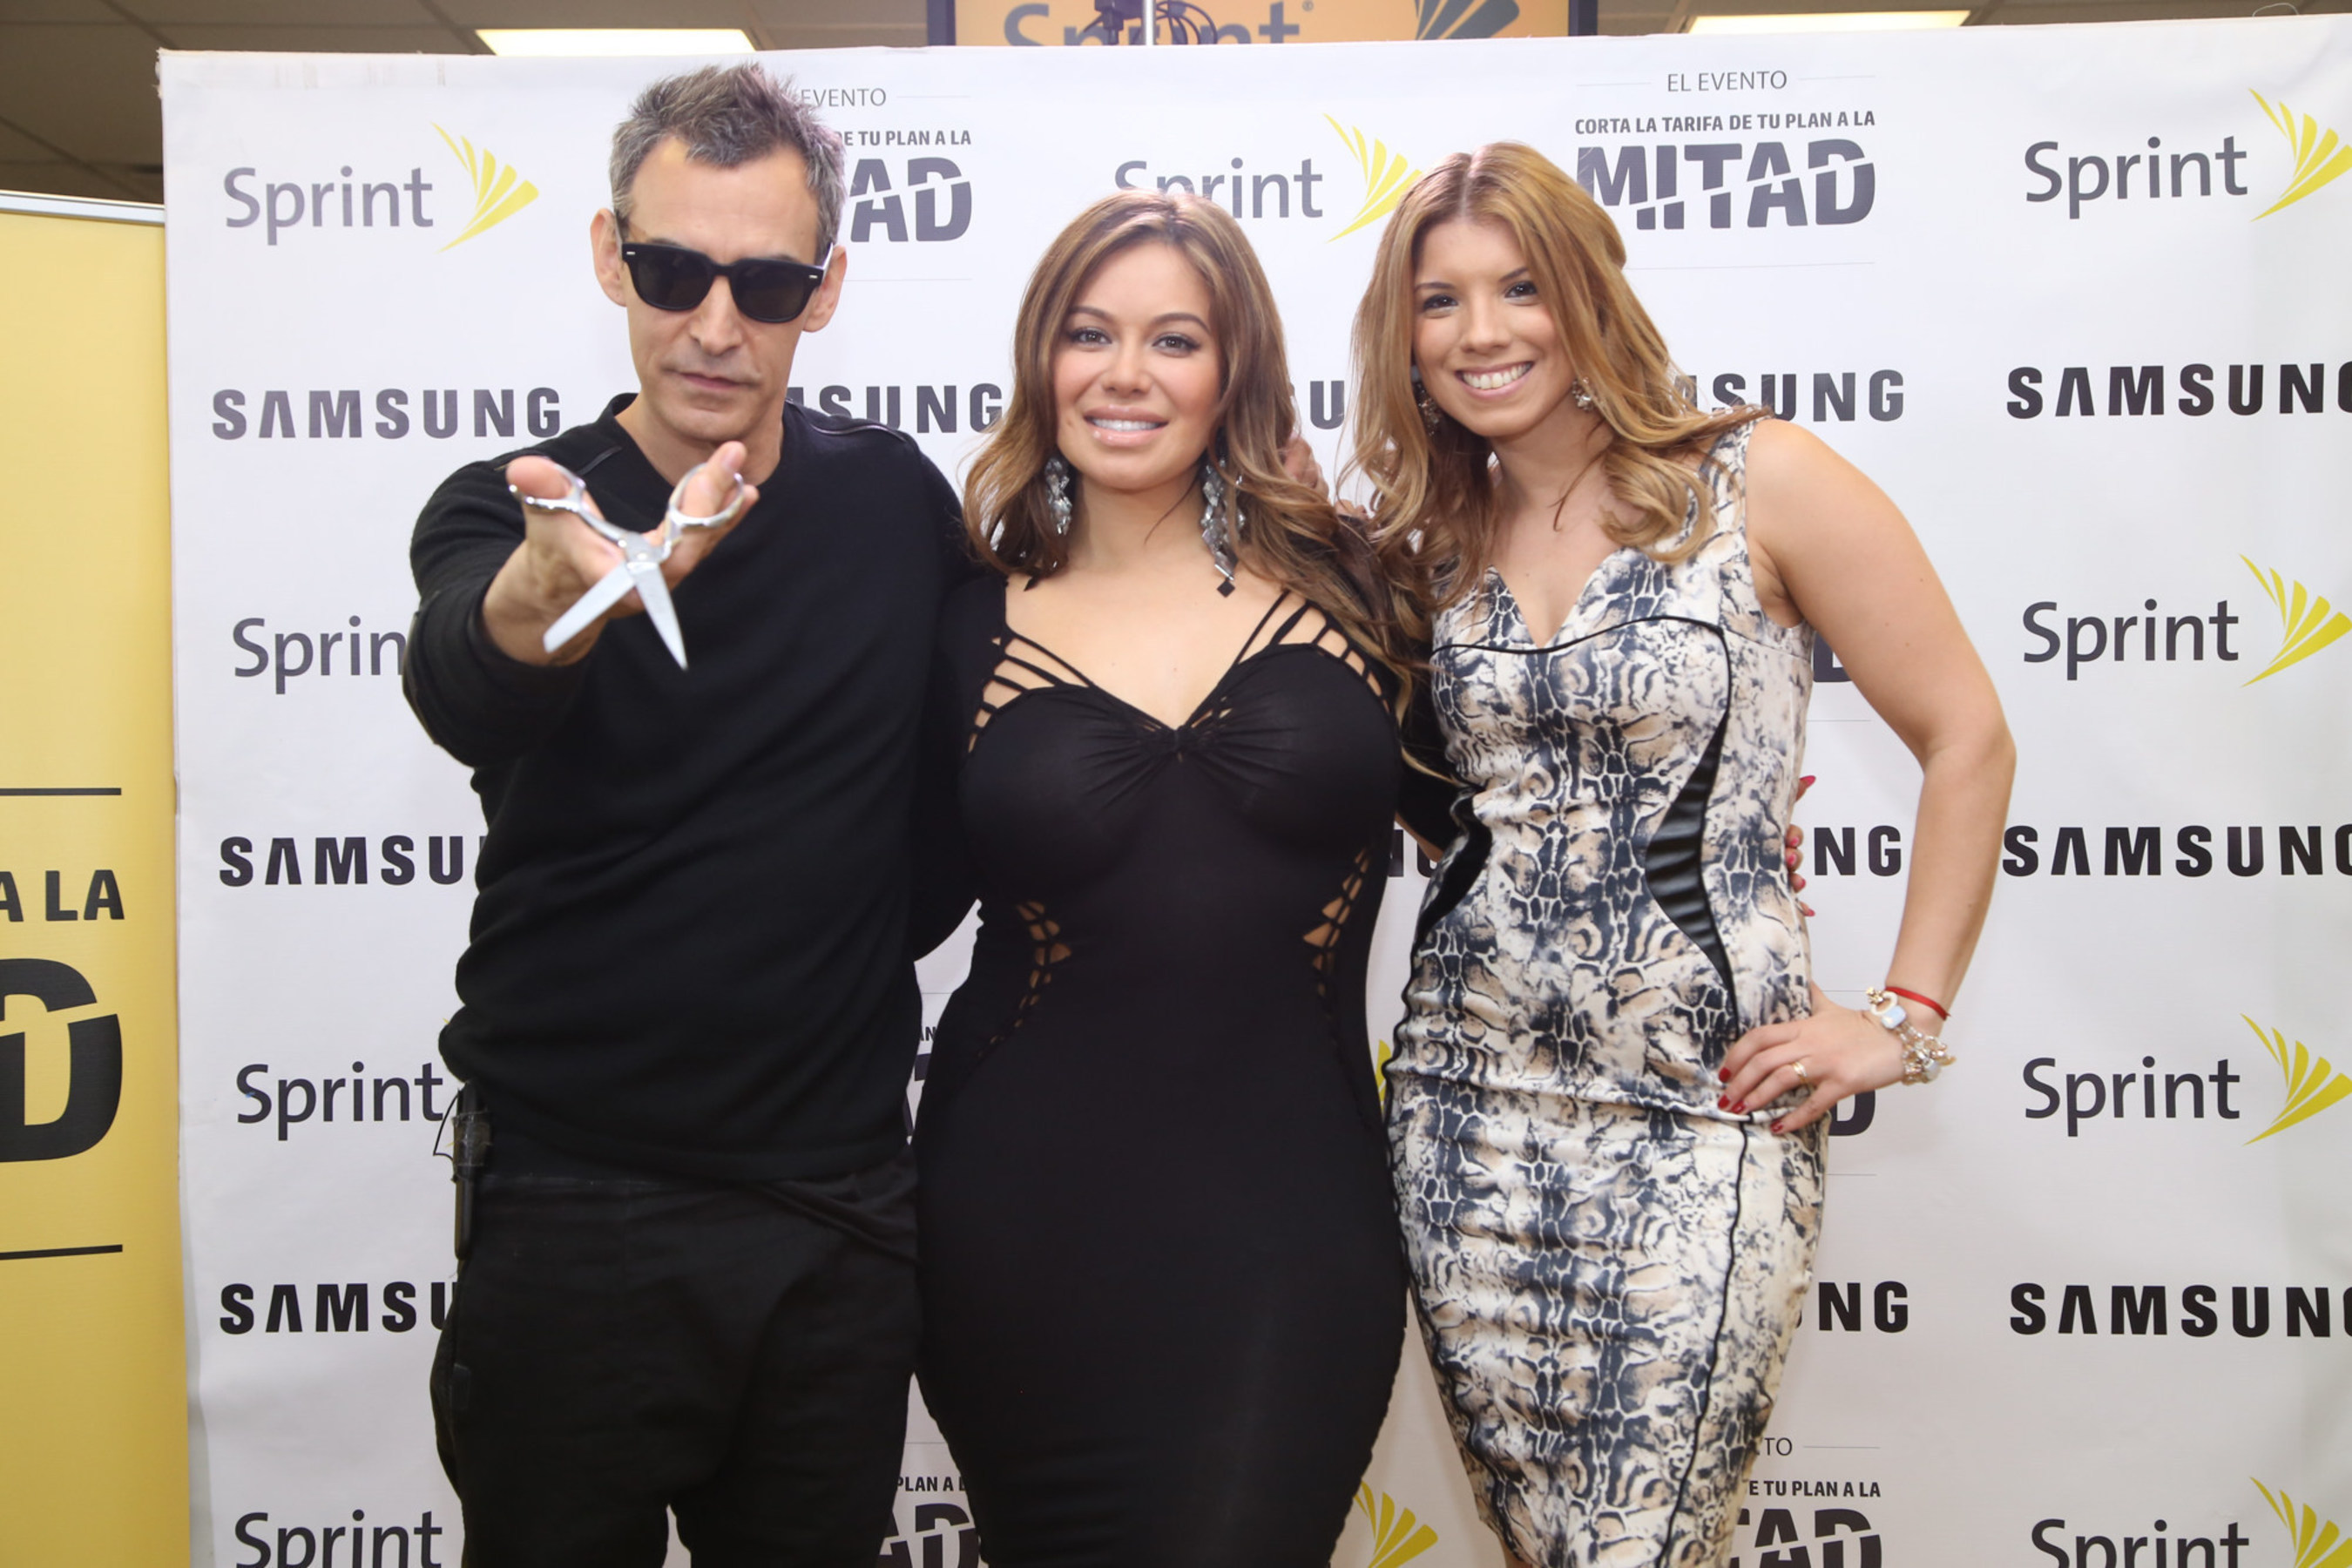 Reality TV Star and Acclaimed Regional Mexican Female Artist Chiquis Rivera Hosts Dress Cutting Event in Miami